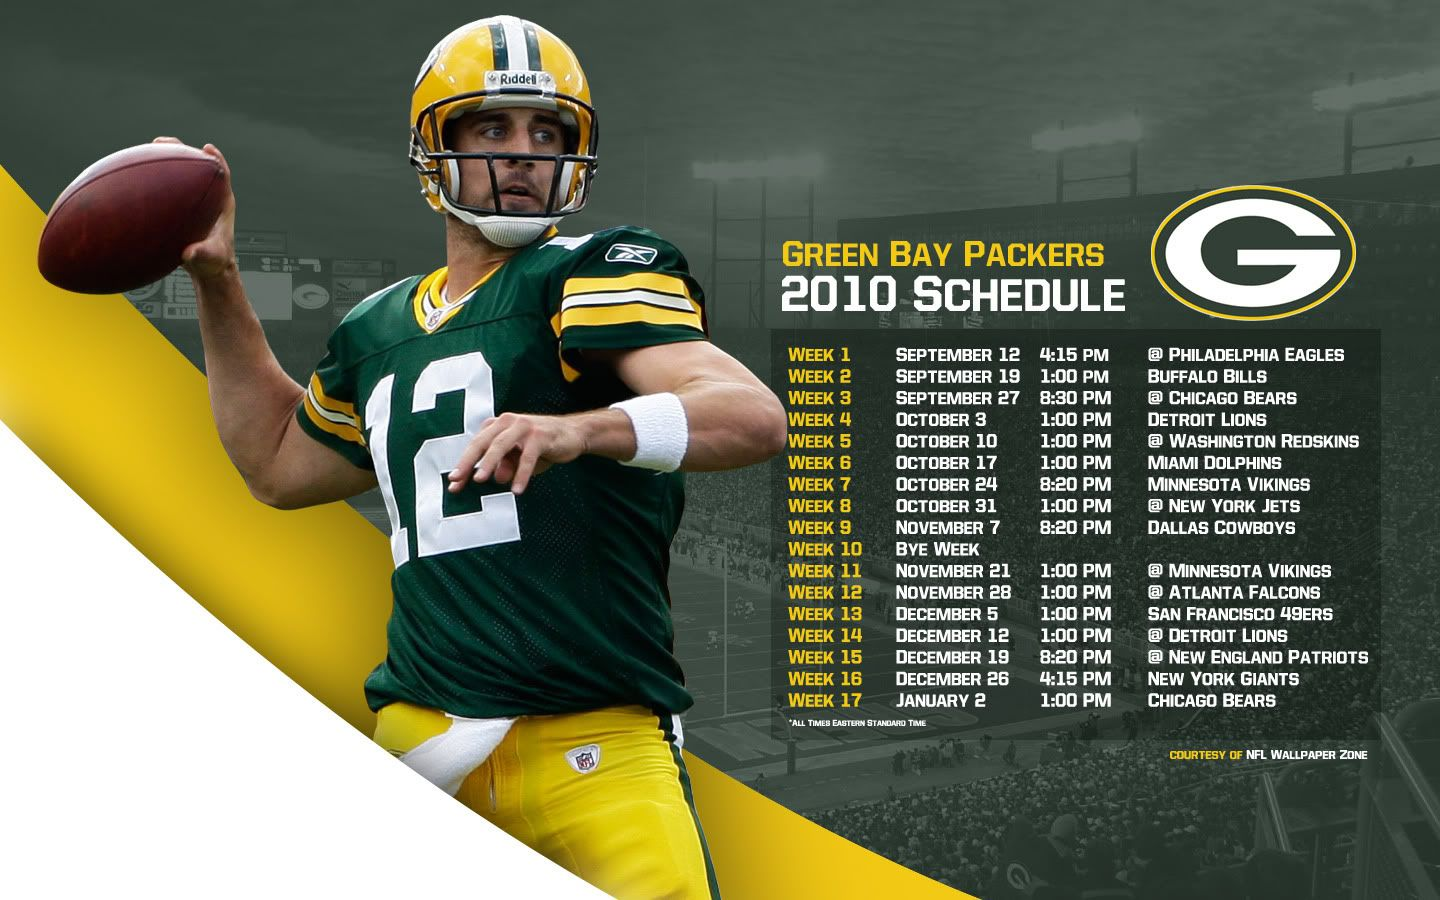 Green Bay Packer Nfl Wallpaper Zone Green Bay Packers 2010 Schedule Wallpaper Aaron Green Bay Packers Packers Green Bay